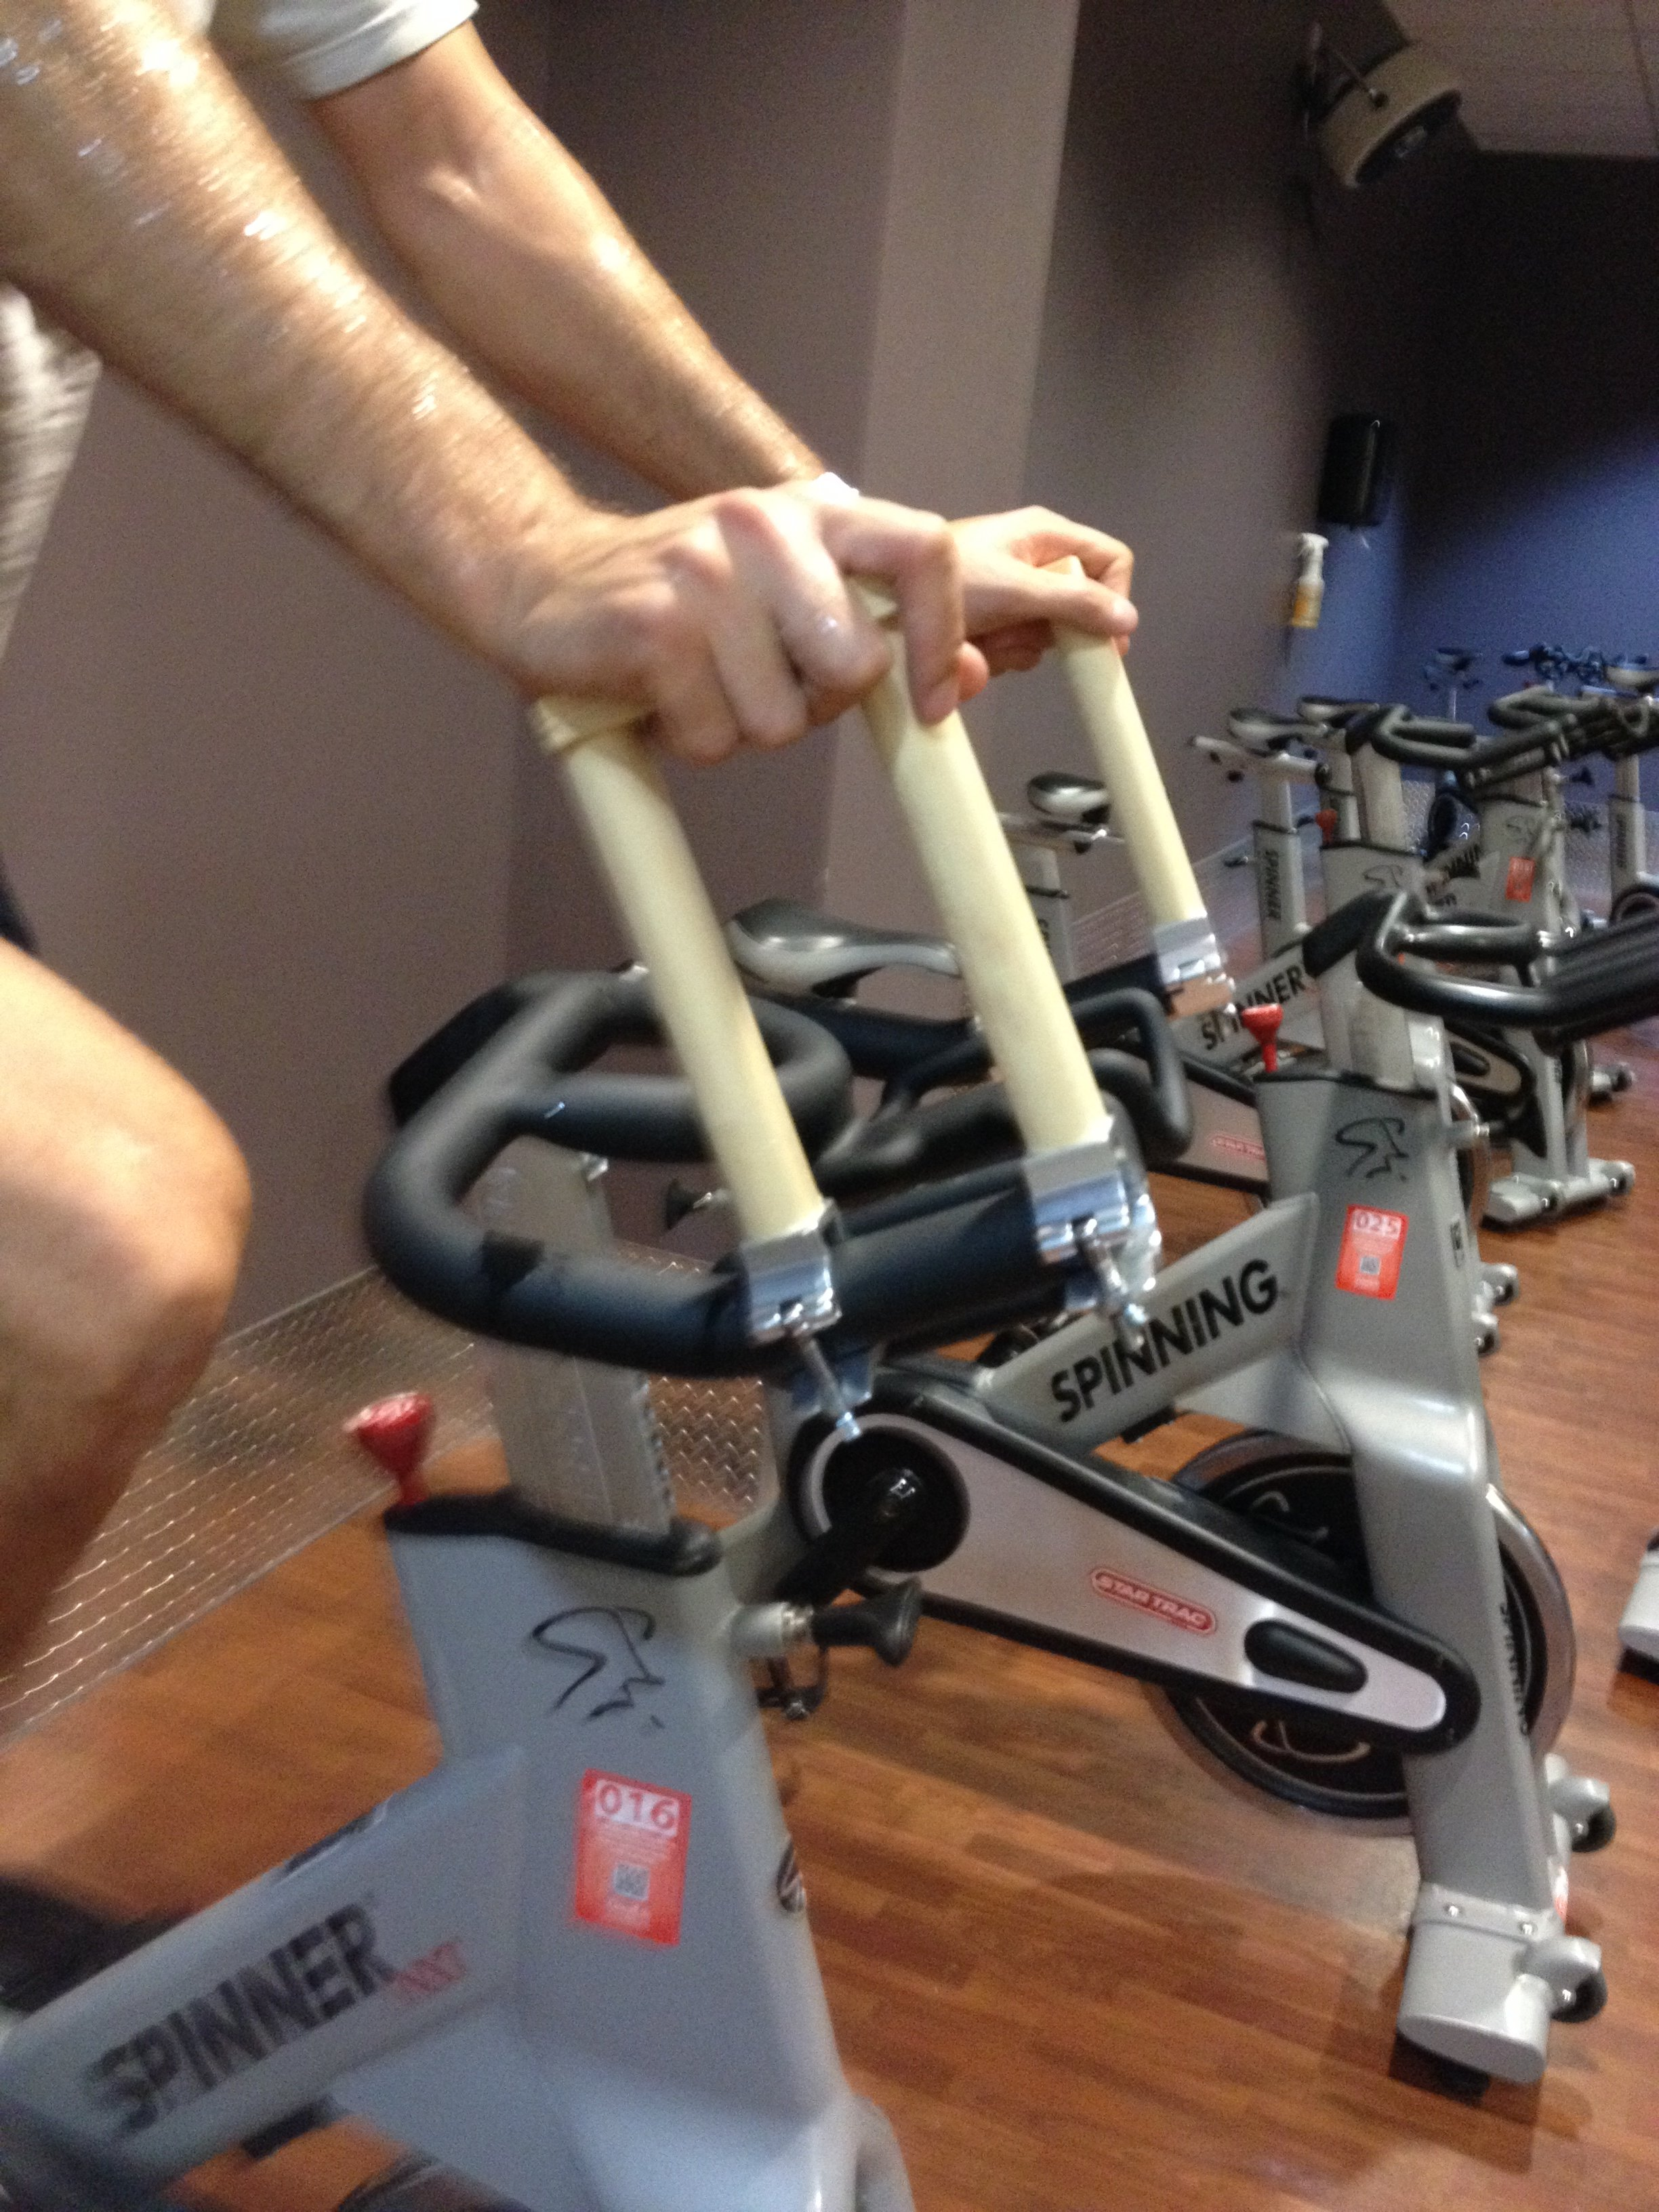 Universal Handle Extension For Tall People on Spin Bike